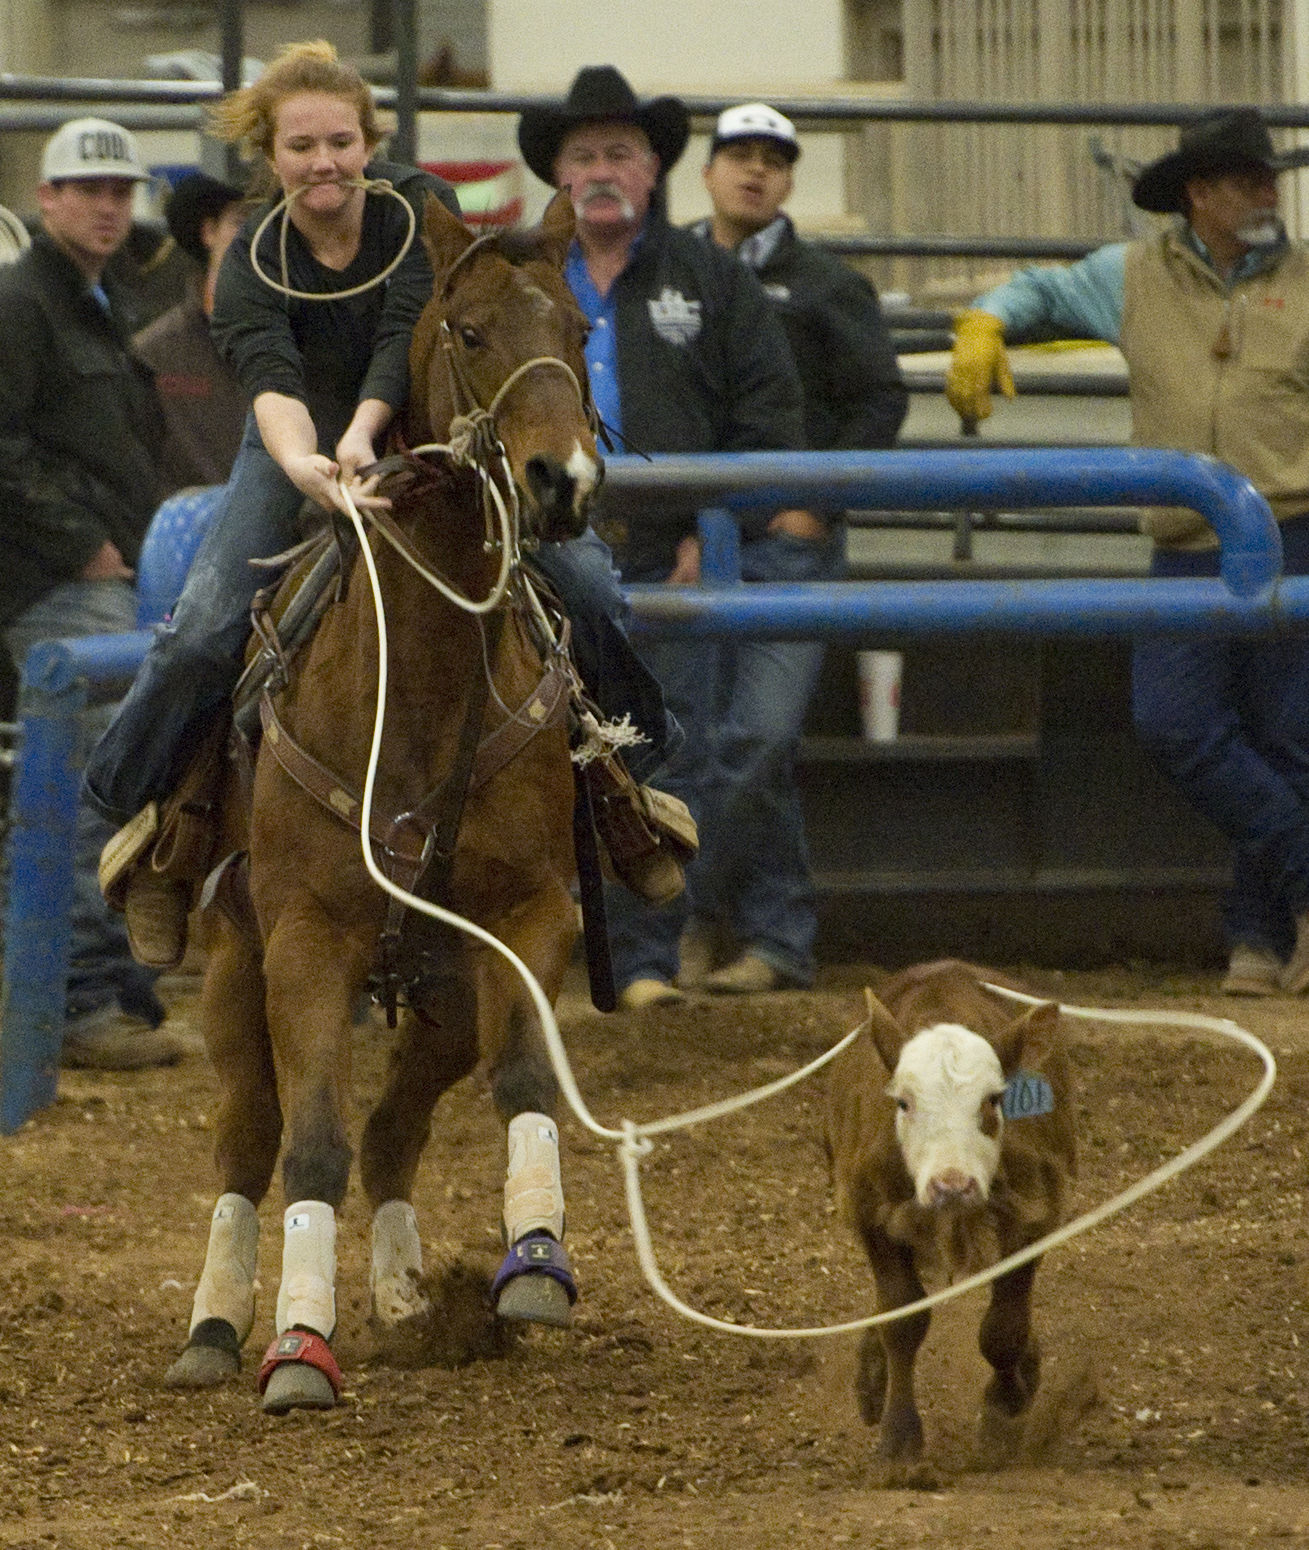 Youngsters to compete in calf-roping - Midland Reporter-Telegram